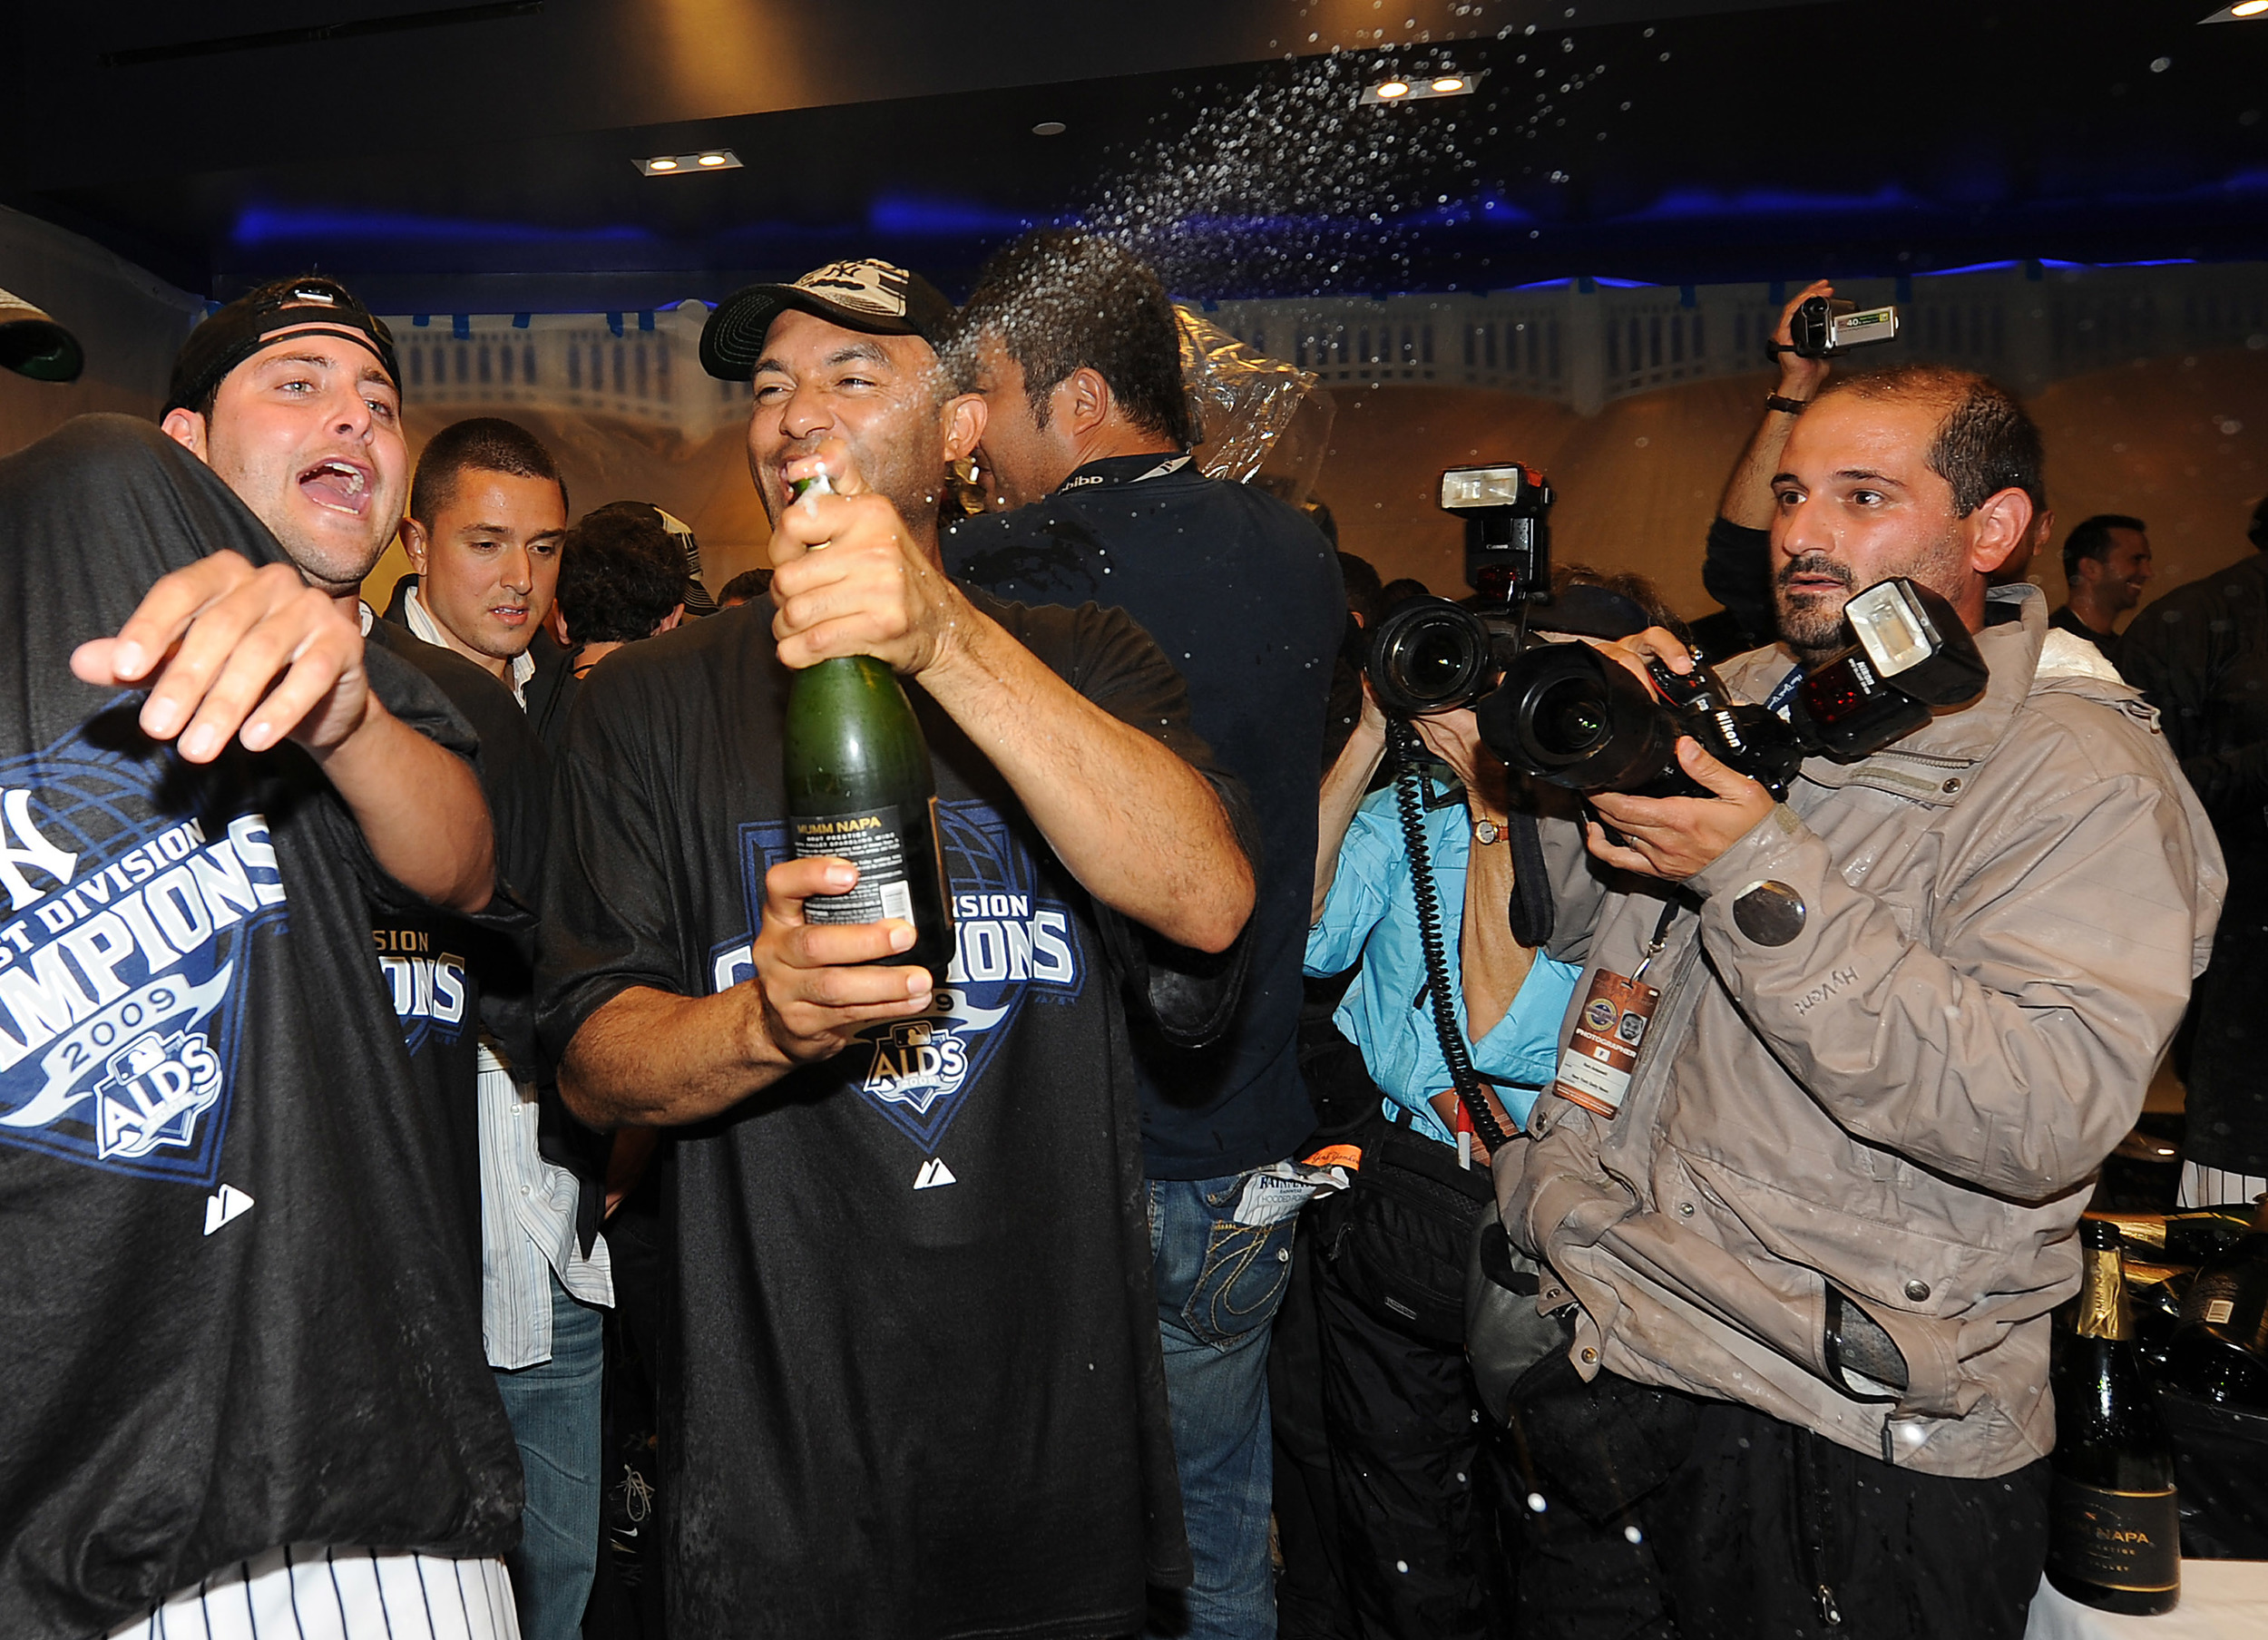 The rather awkward looking photographer at right is me, next to Mariano Rivera as he pops the cork of a champagne bottle in the clubhouse.